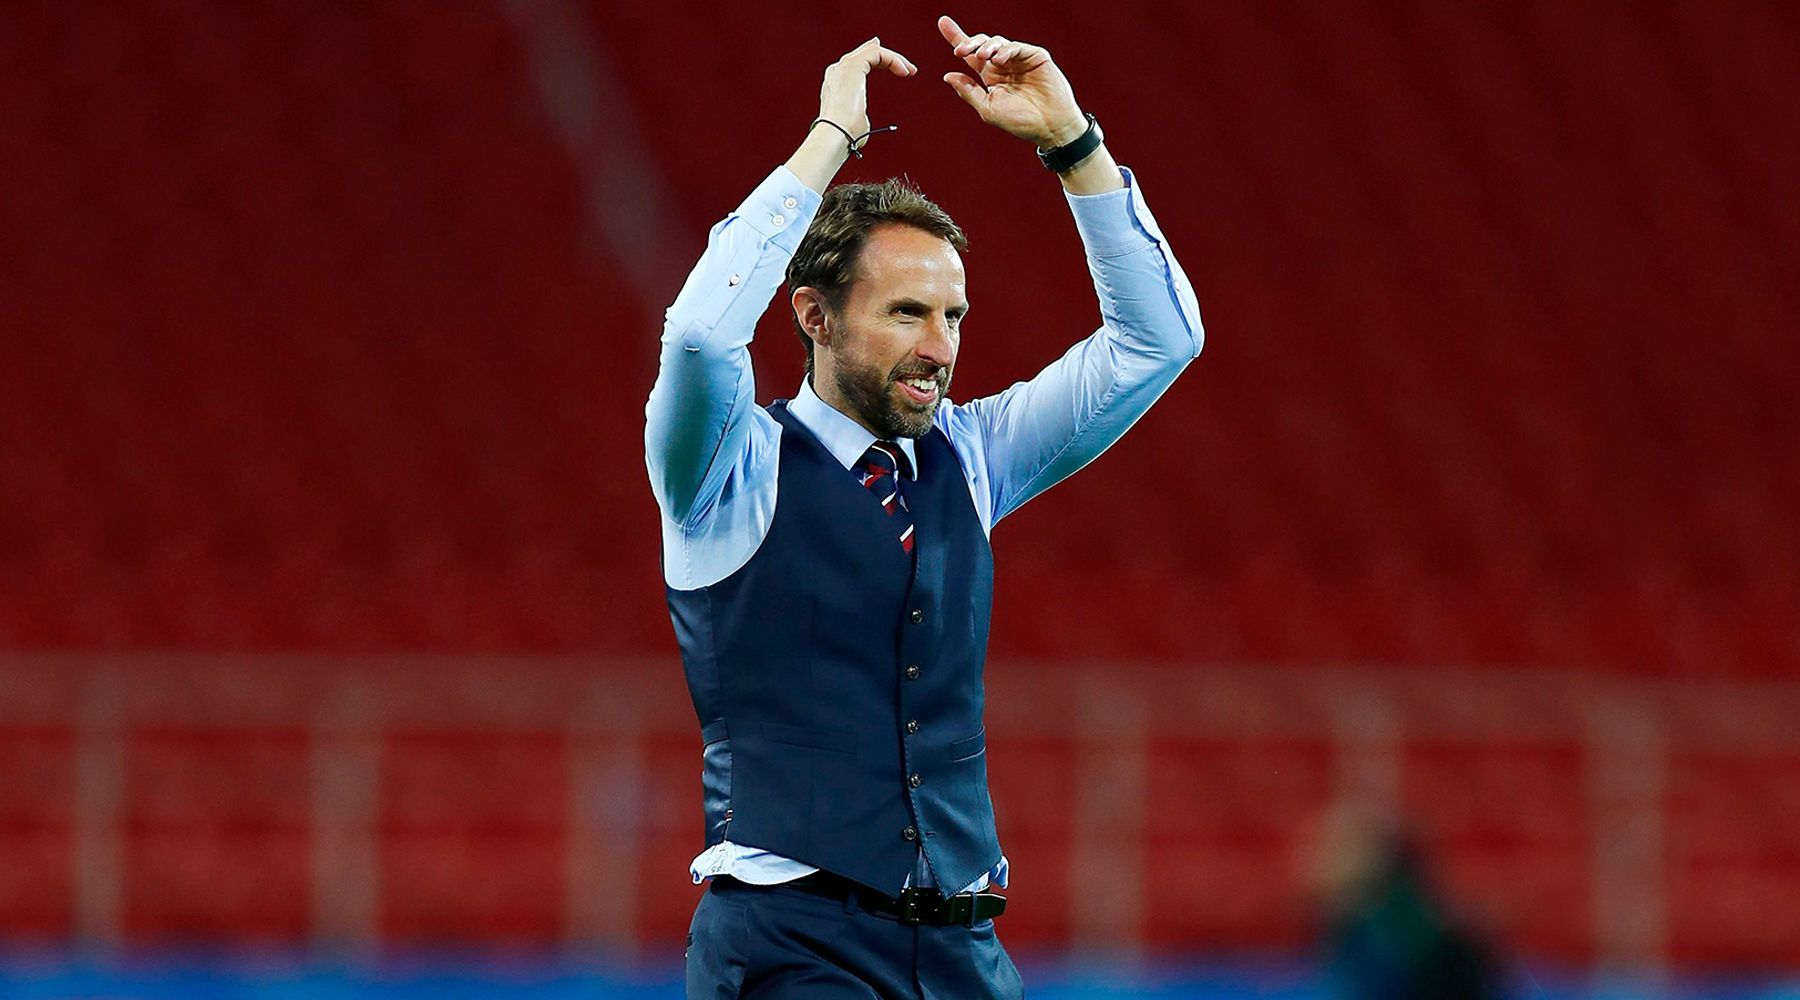 Why We're Supporting The Return Of The Waistcoat